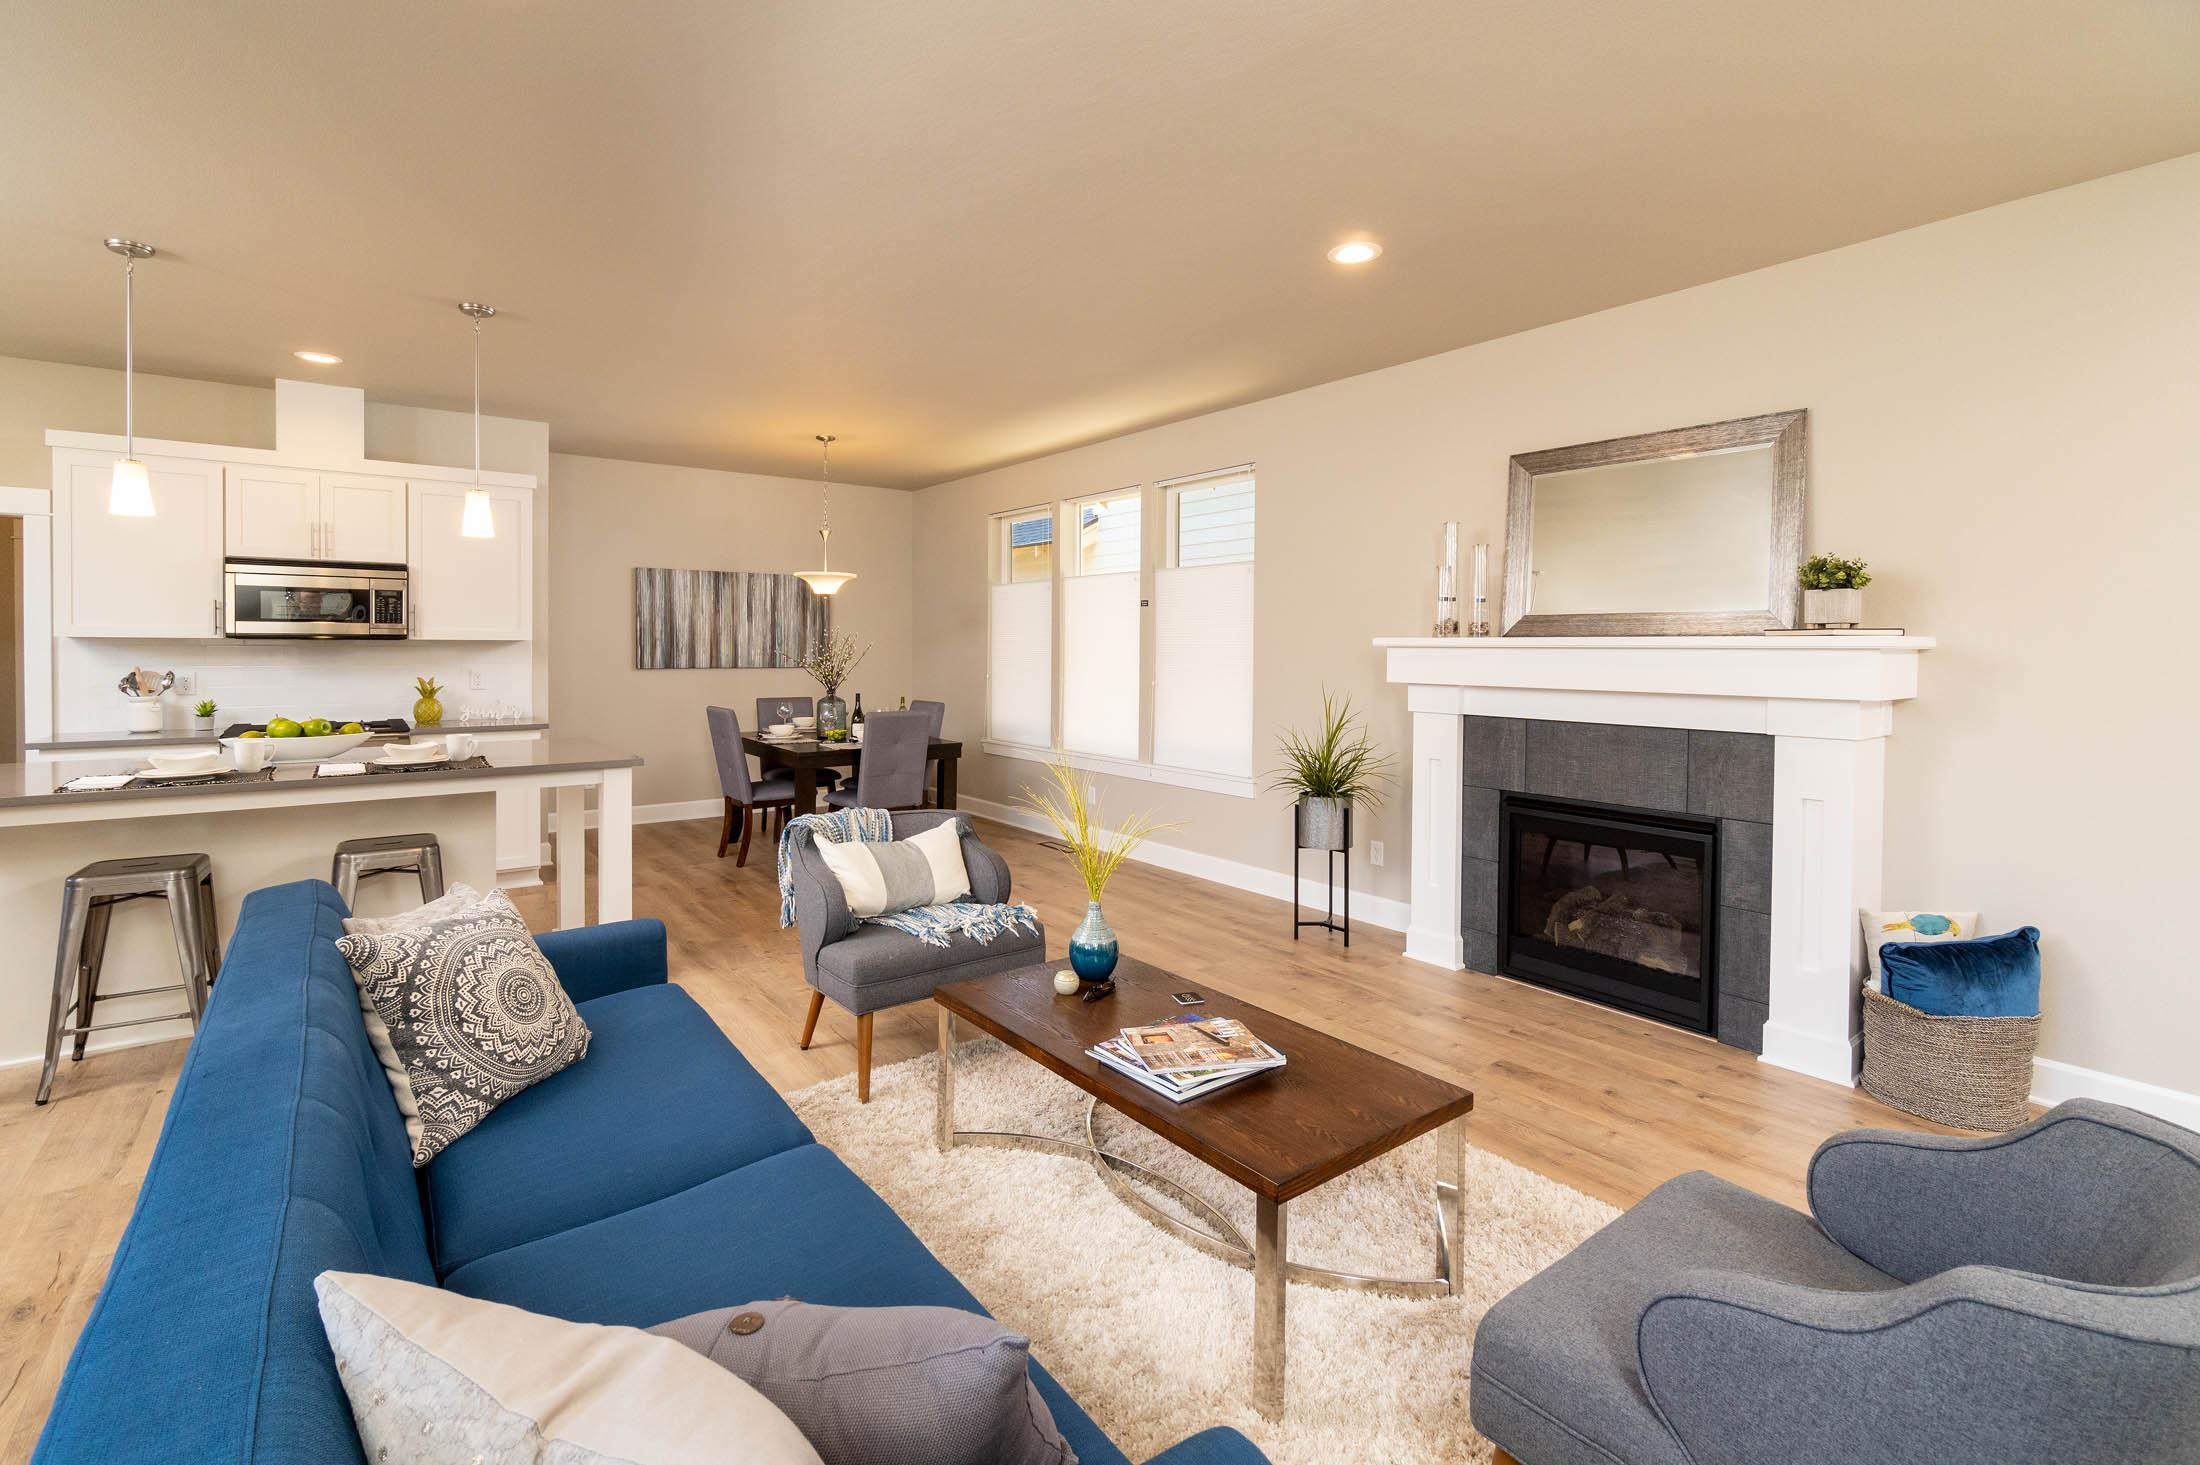 Living Area featured in The Larch By Woodhill Homes in Central Oregon, OR